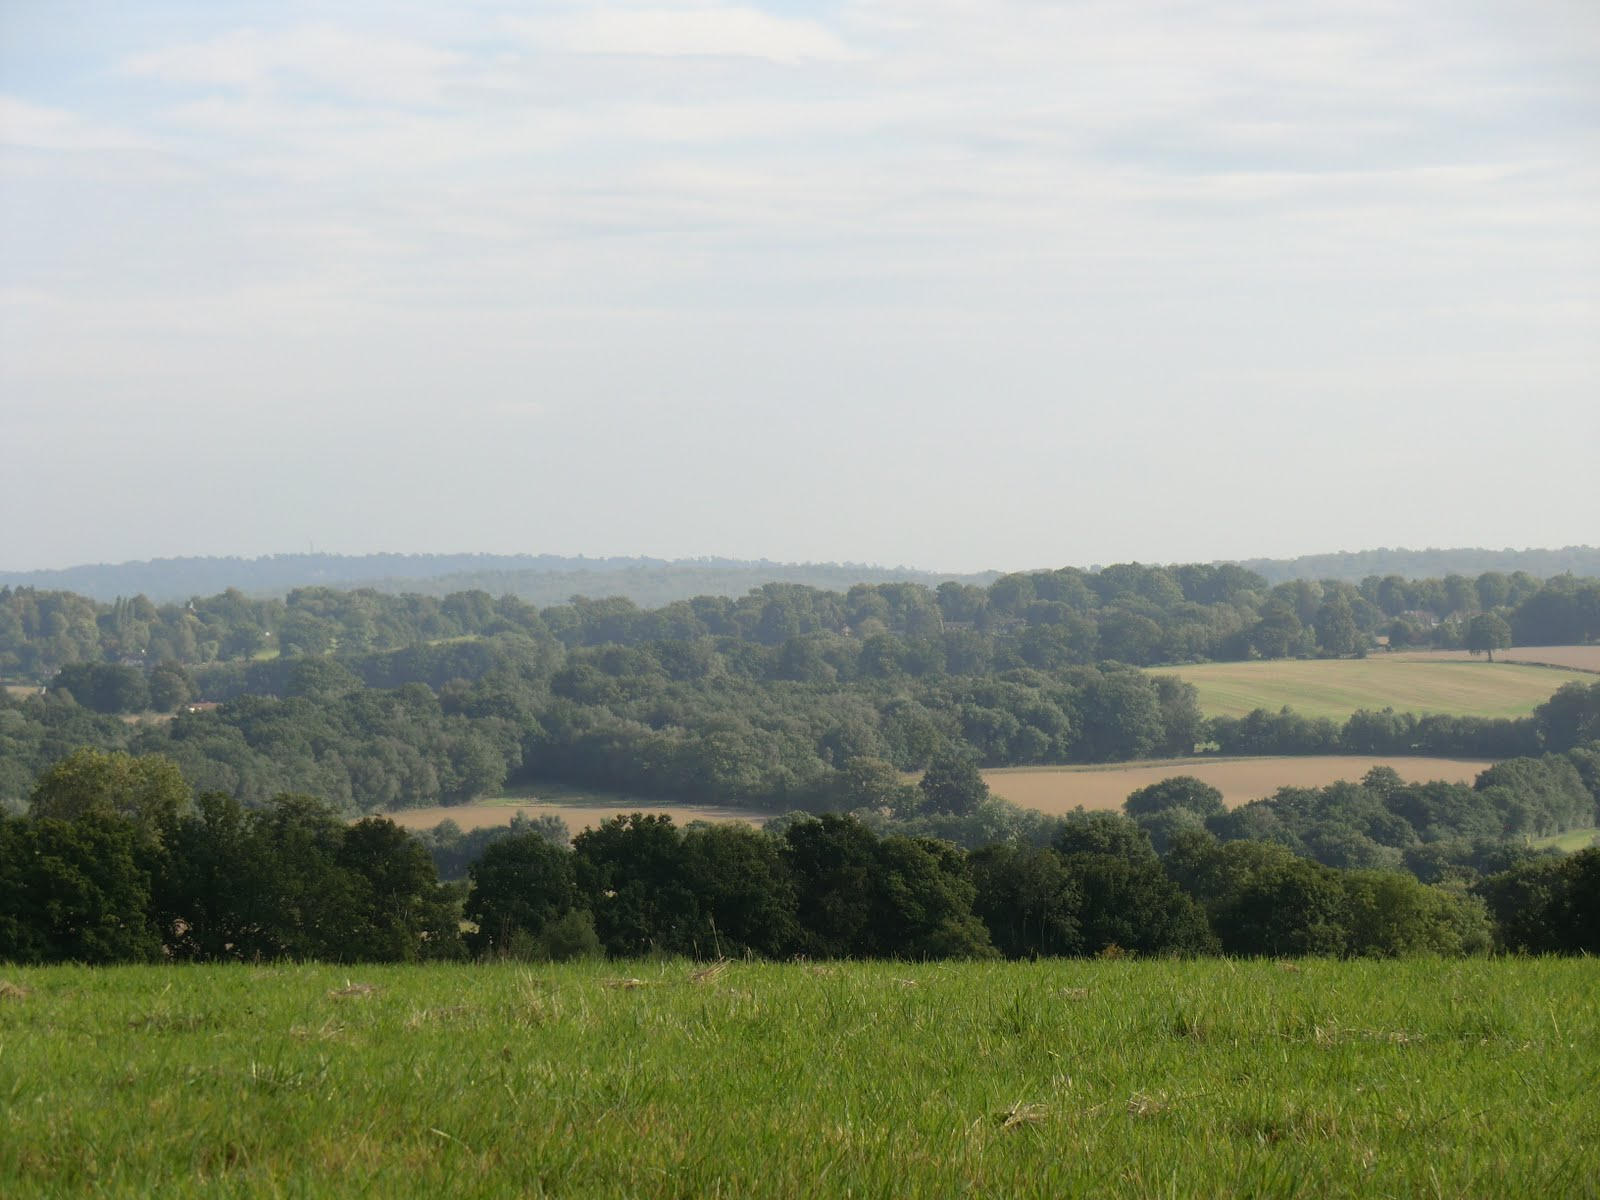 CIMG8791 Looking south across the Medway valley